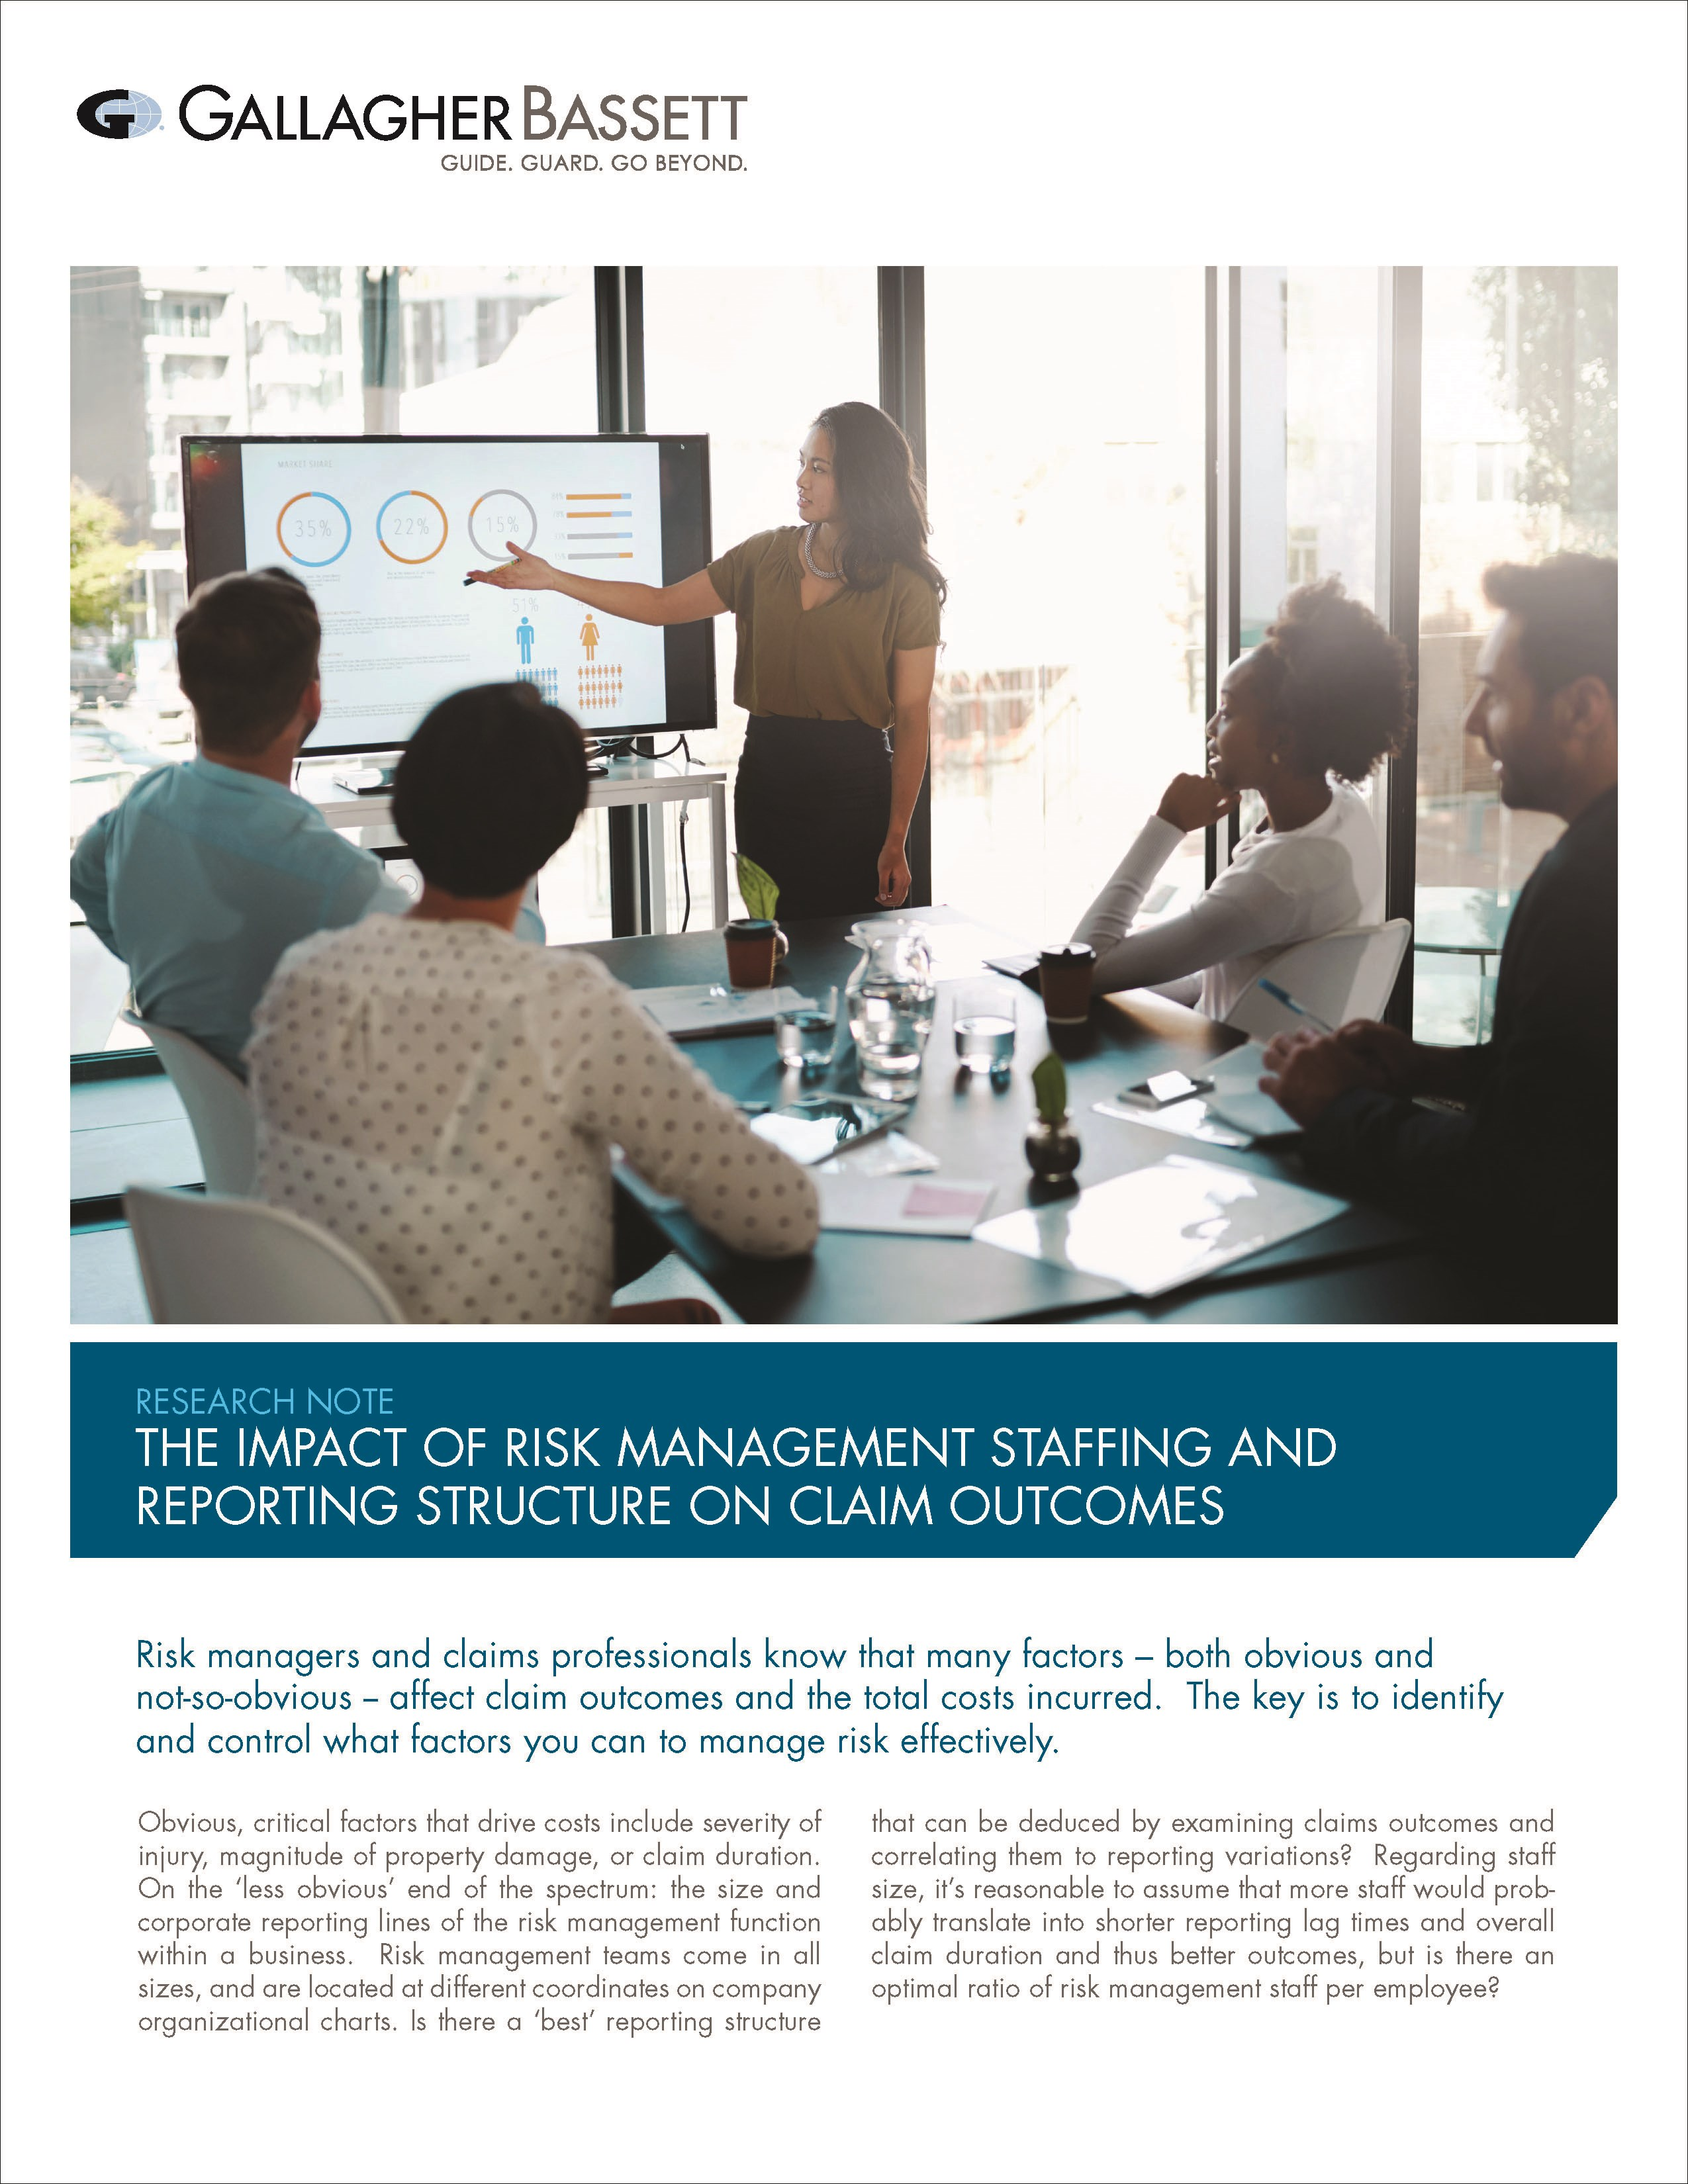 DOES REPORTING STRUCTURE AND RISK MANAGEMENT TEAM SIZE IMPACT CLAIM OUTCOMES?